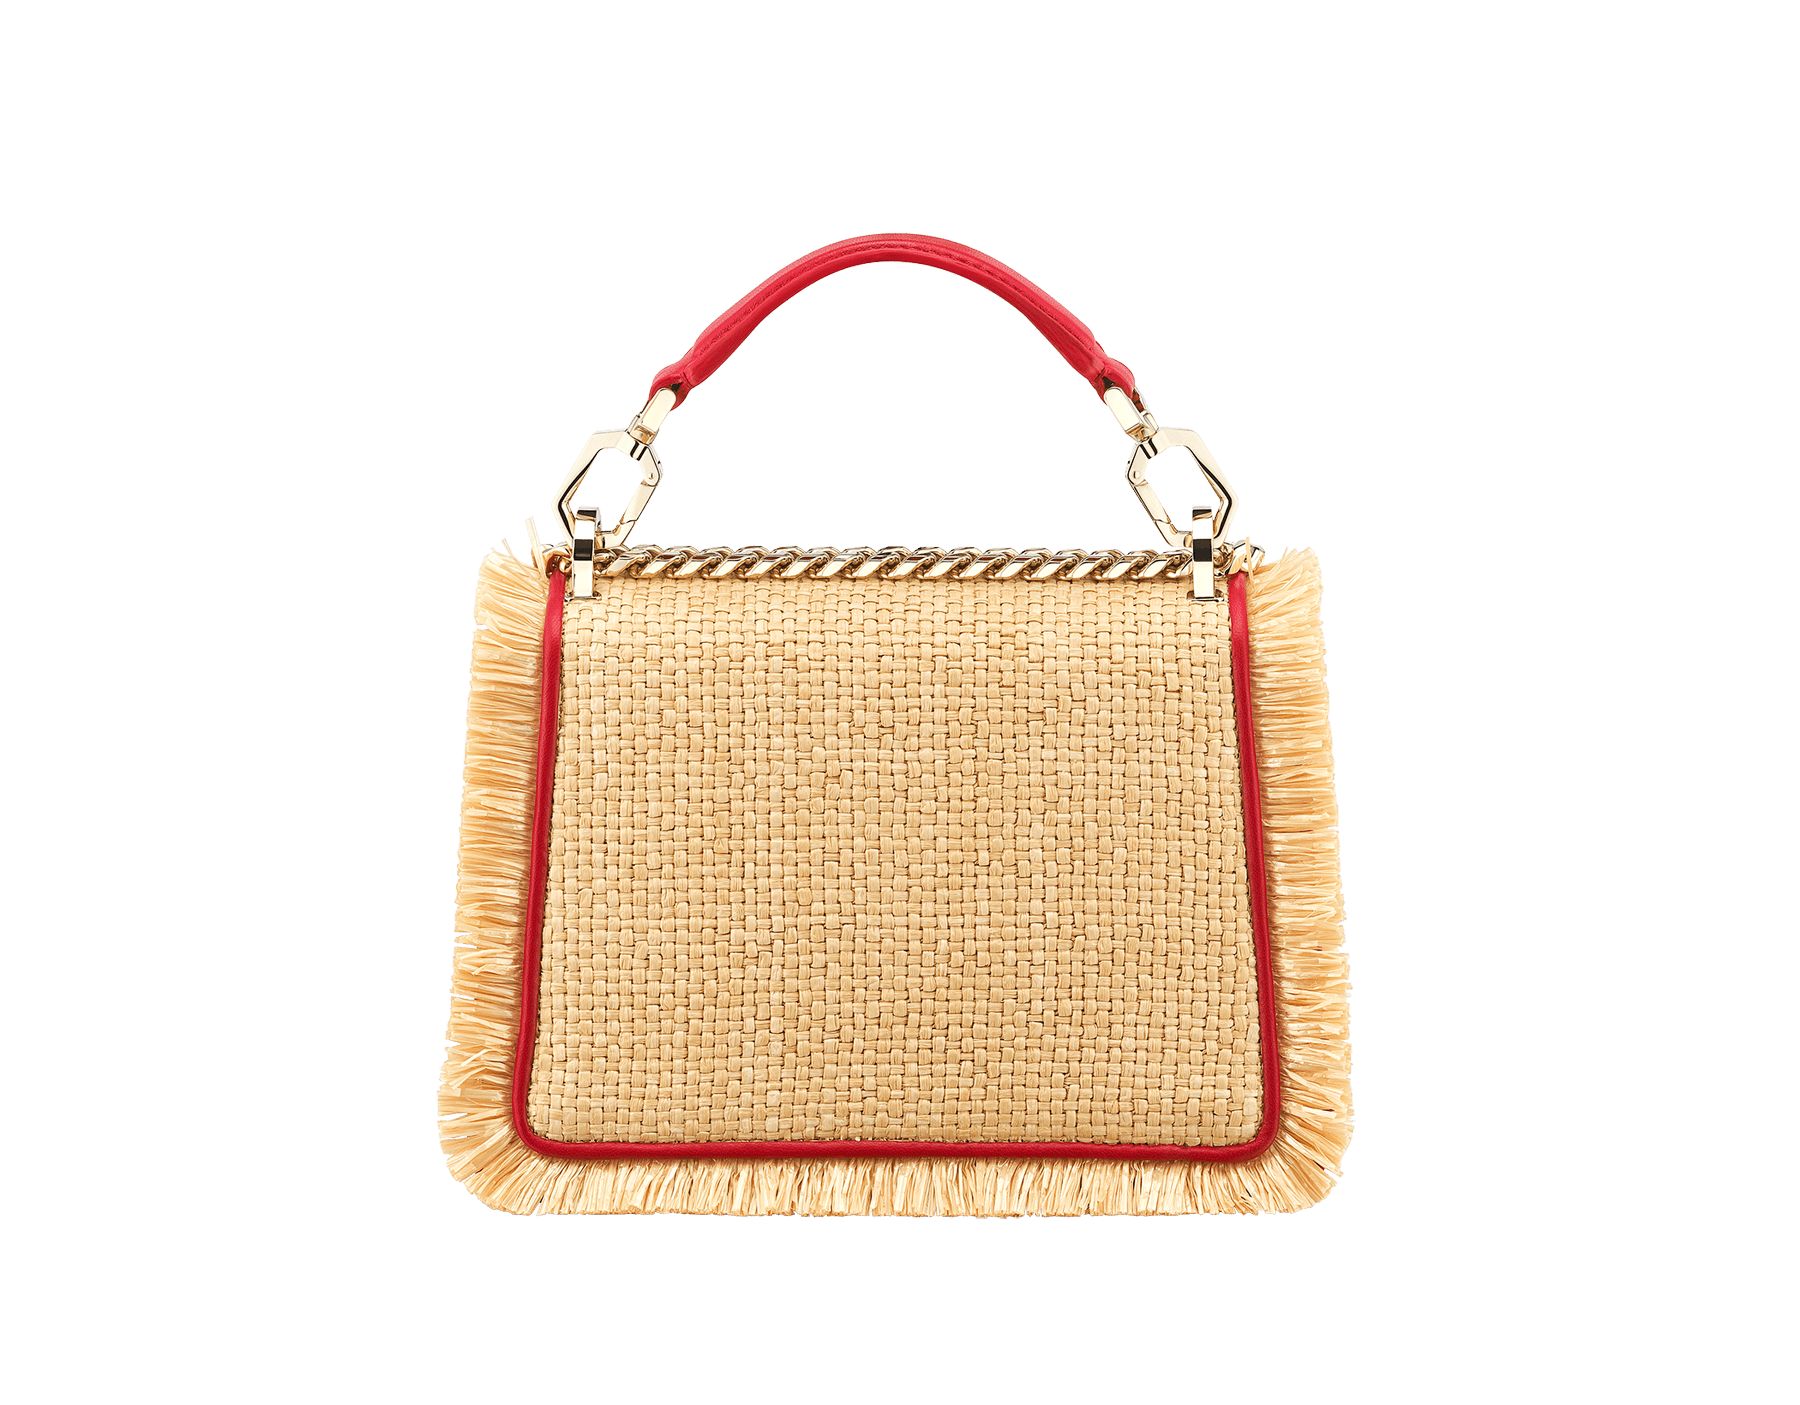 """Serpenti Diamond Blast"" crossbody bag in beige raffia and Carmine Jasper red calfskin frames finished with beige raffia fringes, and Carmine Jasper red nappa leather internal lining. Alluring snakehead closure in light gold-plated brass, enhanced with full matte Natural beige enamel and black onyx eyes. 290906 image 3"